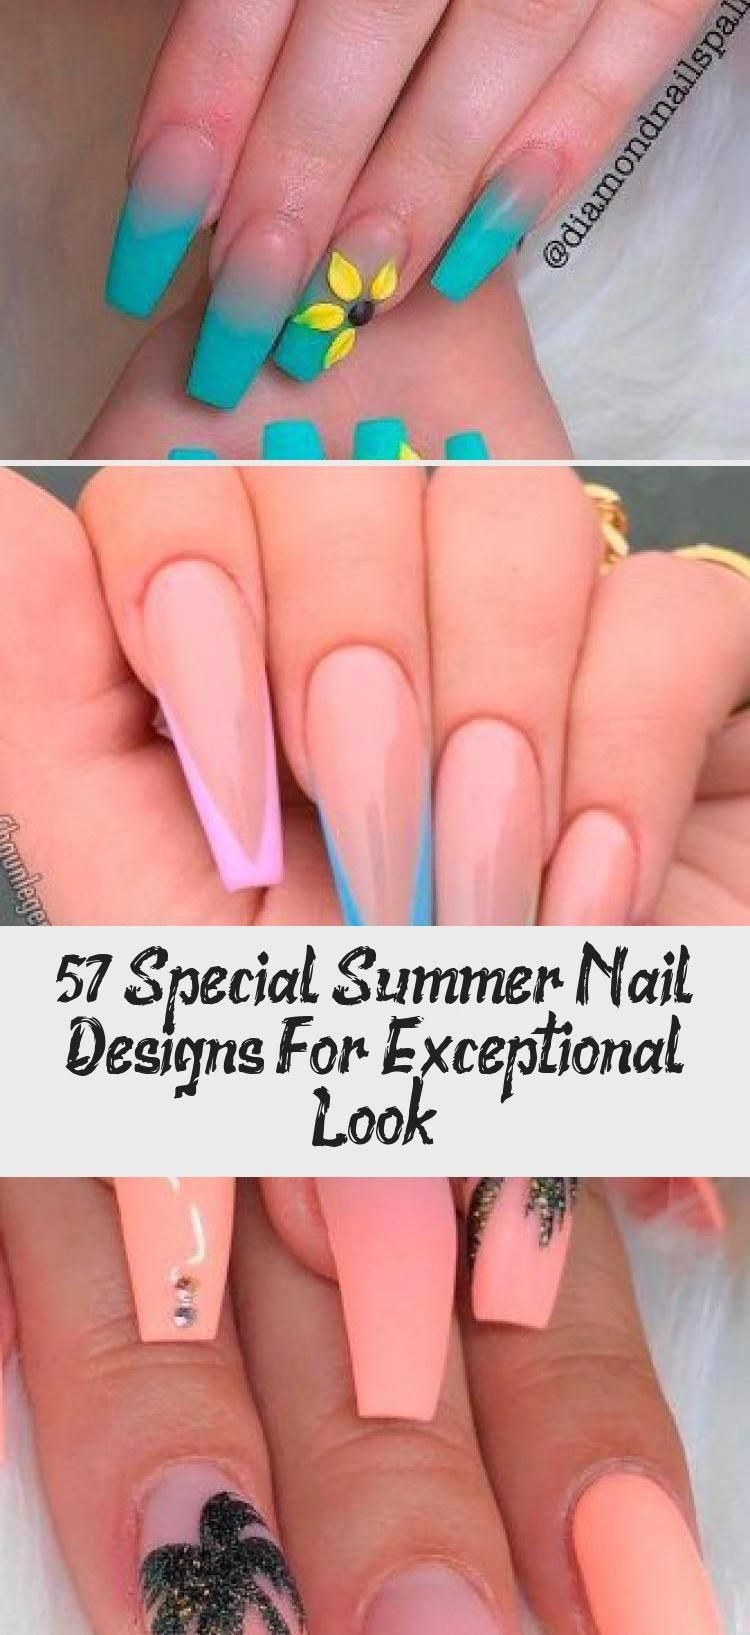 Matte Peach Nails Design #mattenails #peachnails ★ Easy, cute and fun summer nail designs are waiting for you to get inspired with. Make sure that you greet the beach season right! #glaminati #lifestyle #summernaildesigns #Toenaildesign #Crazynaildesign #naildesignUnique #naildesignMarble #naildesignWhite